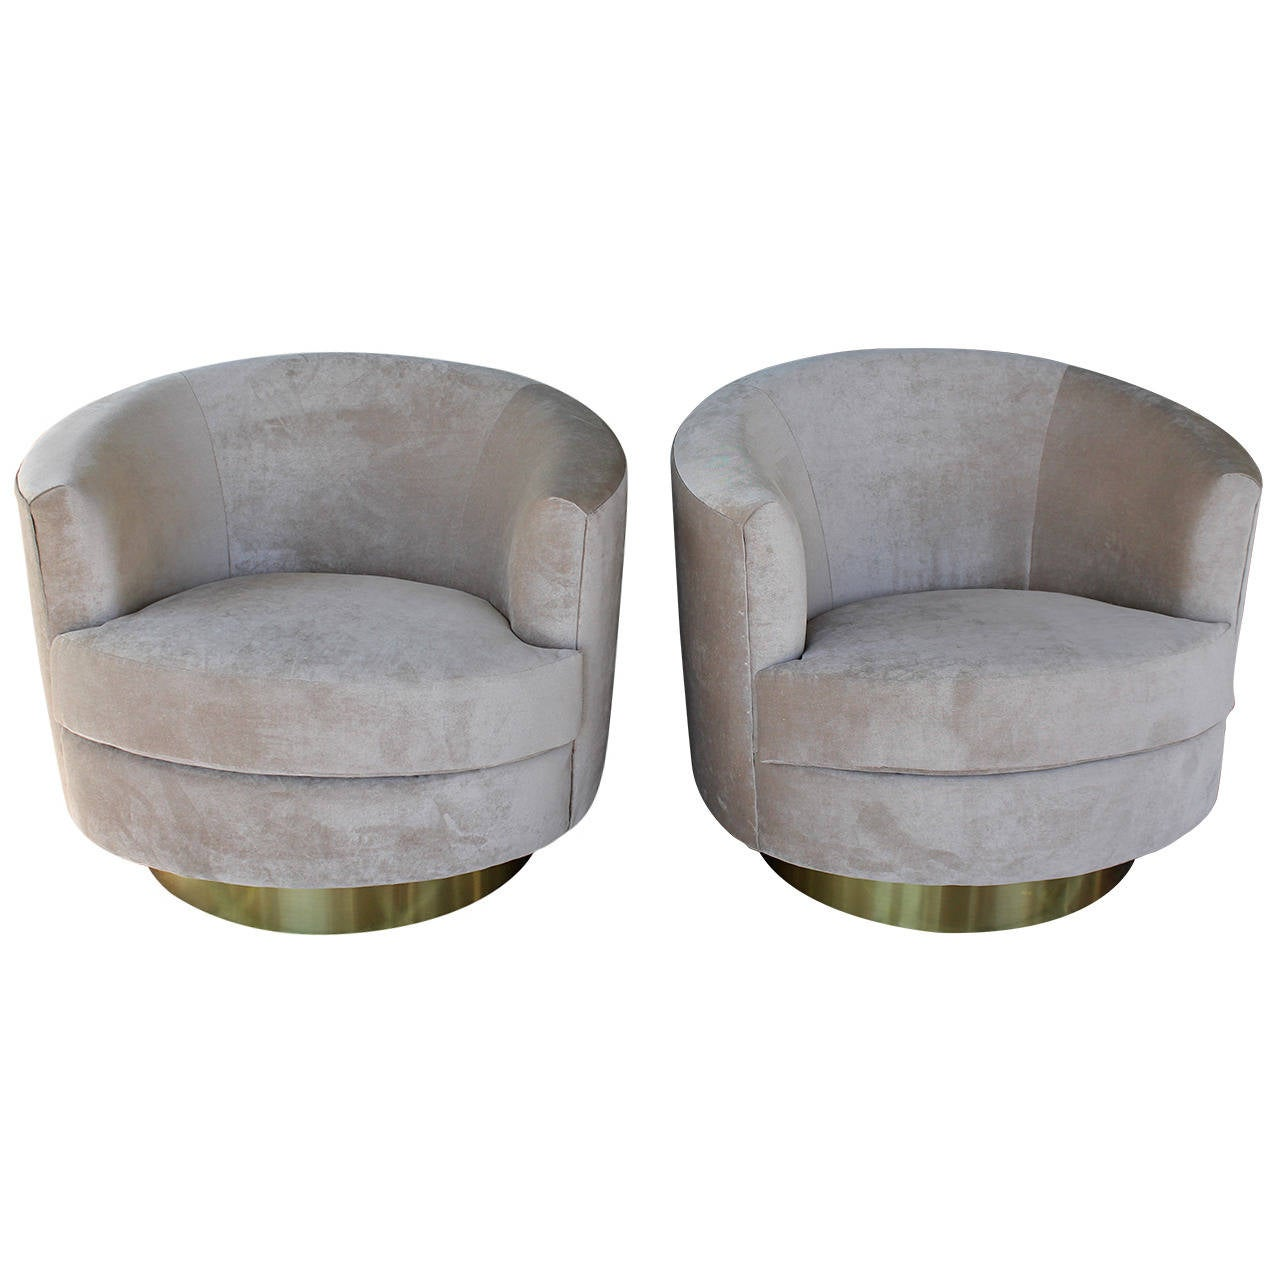 Pair of Barrel Swivel Chairs in the Style of Milo Baughman